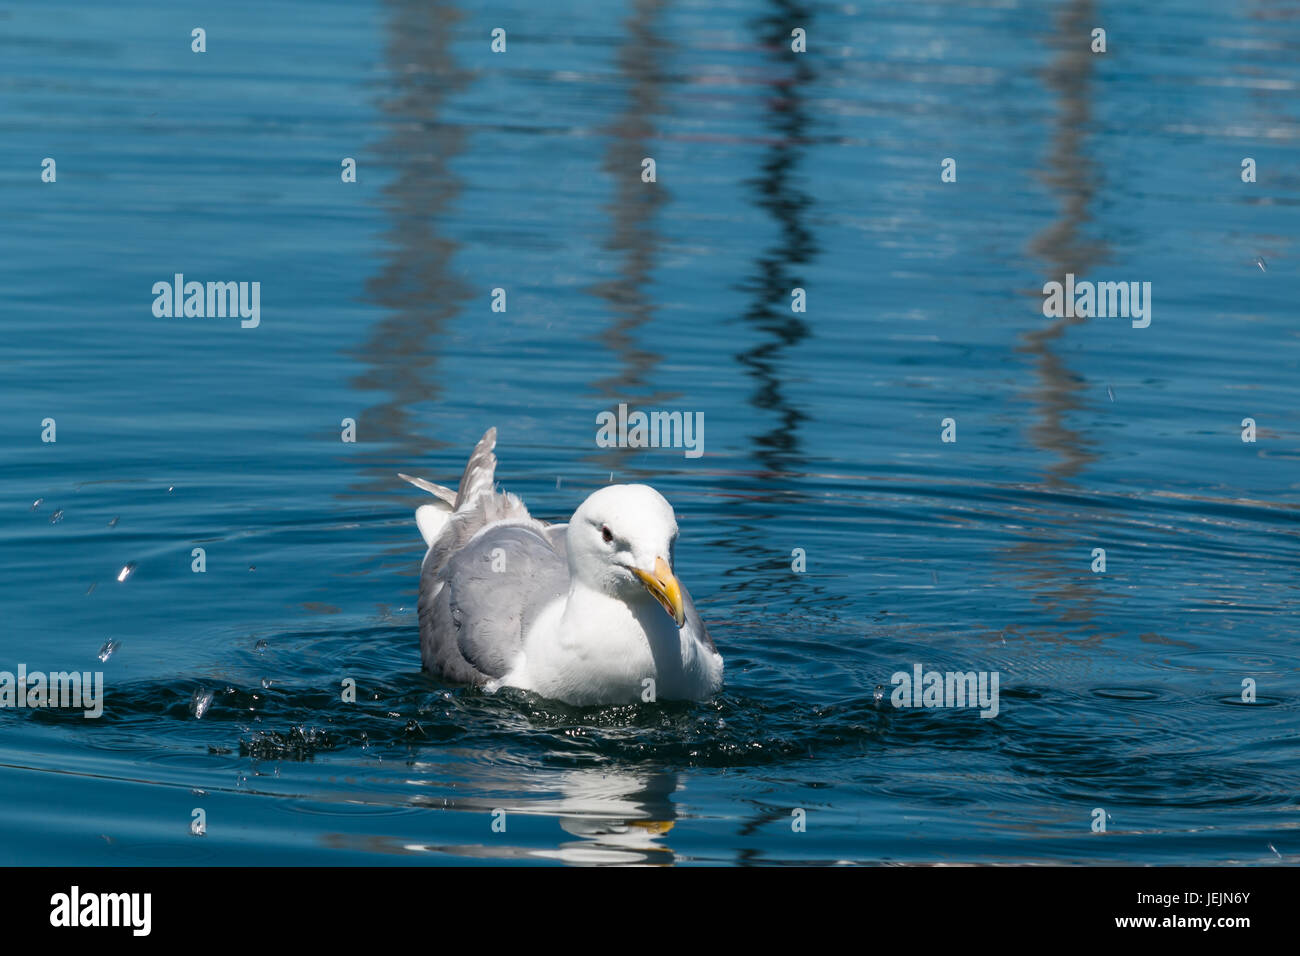 Adult Glaucous-winged gull (Larus glaucescens) swimming and splashing in ocean - Stock Image